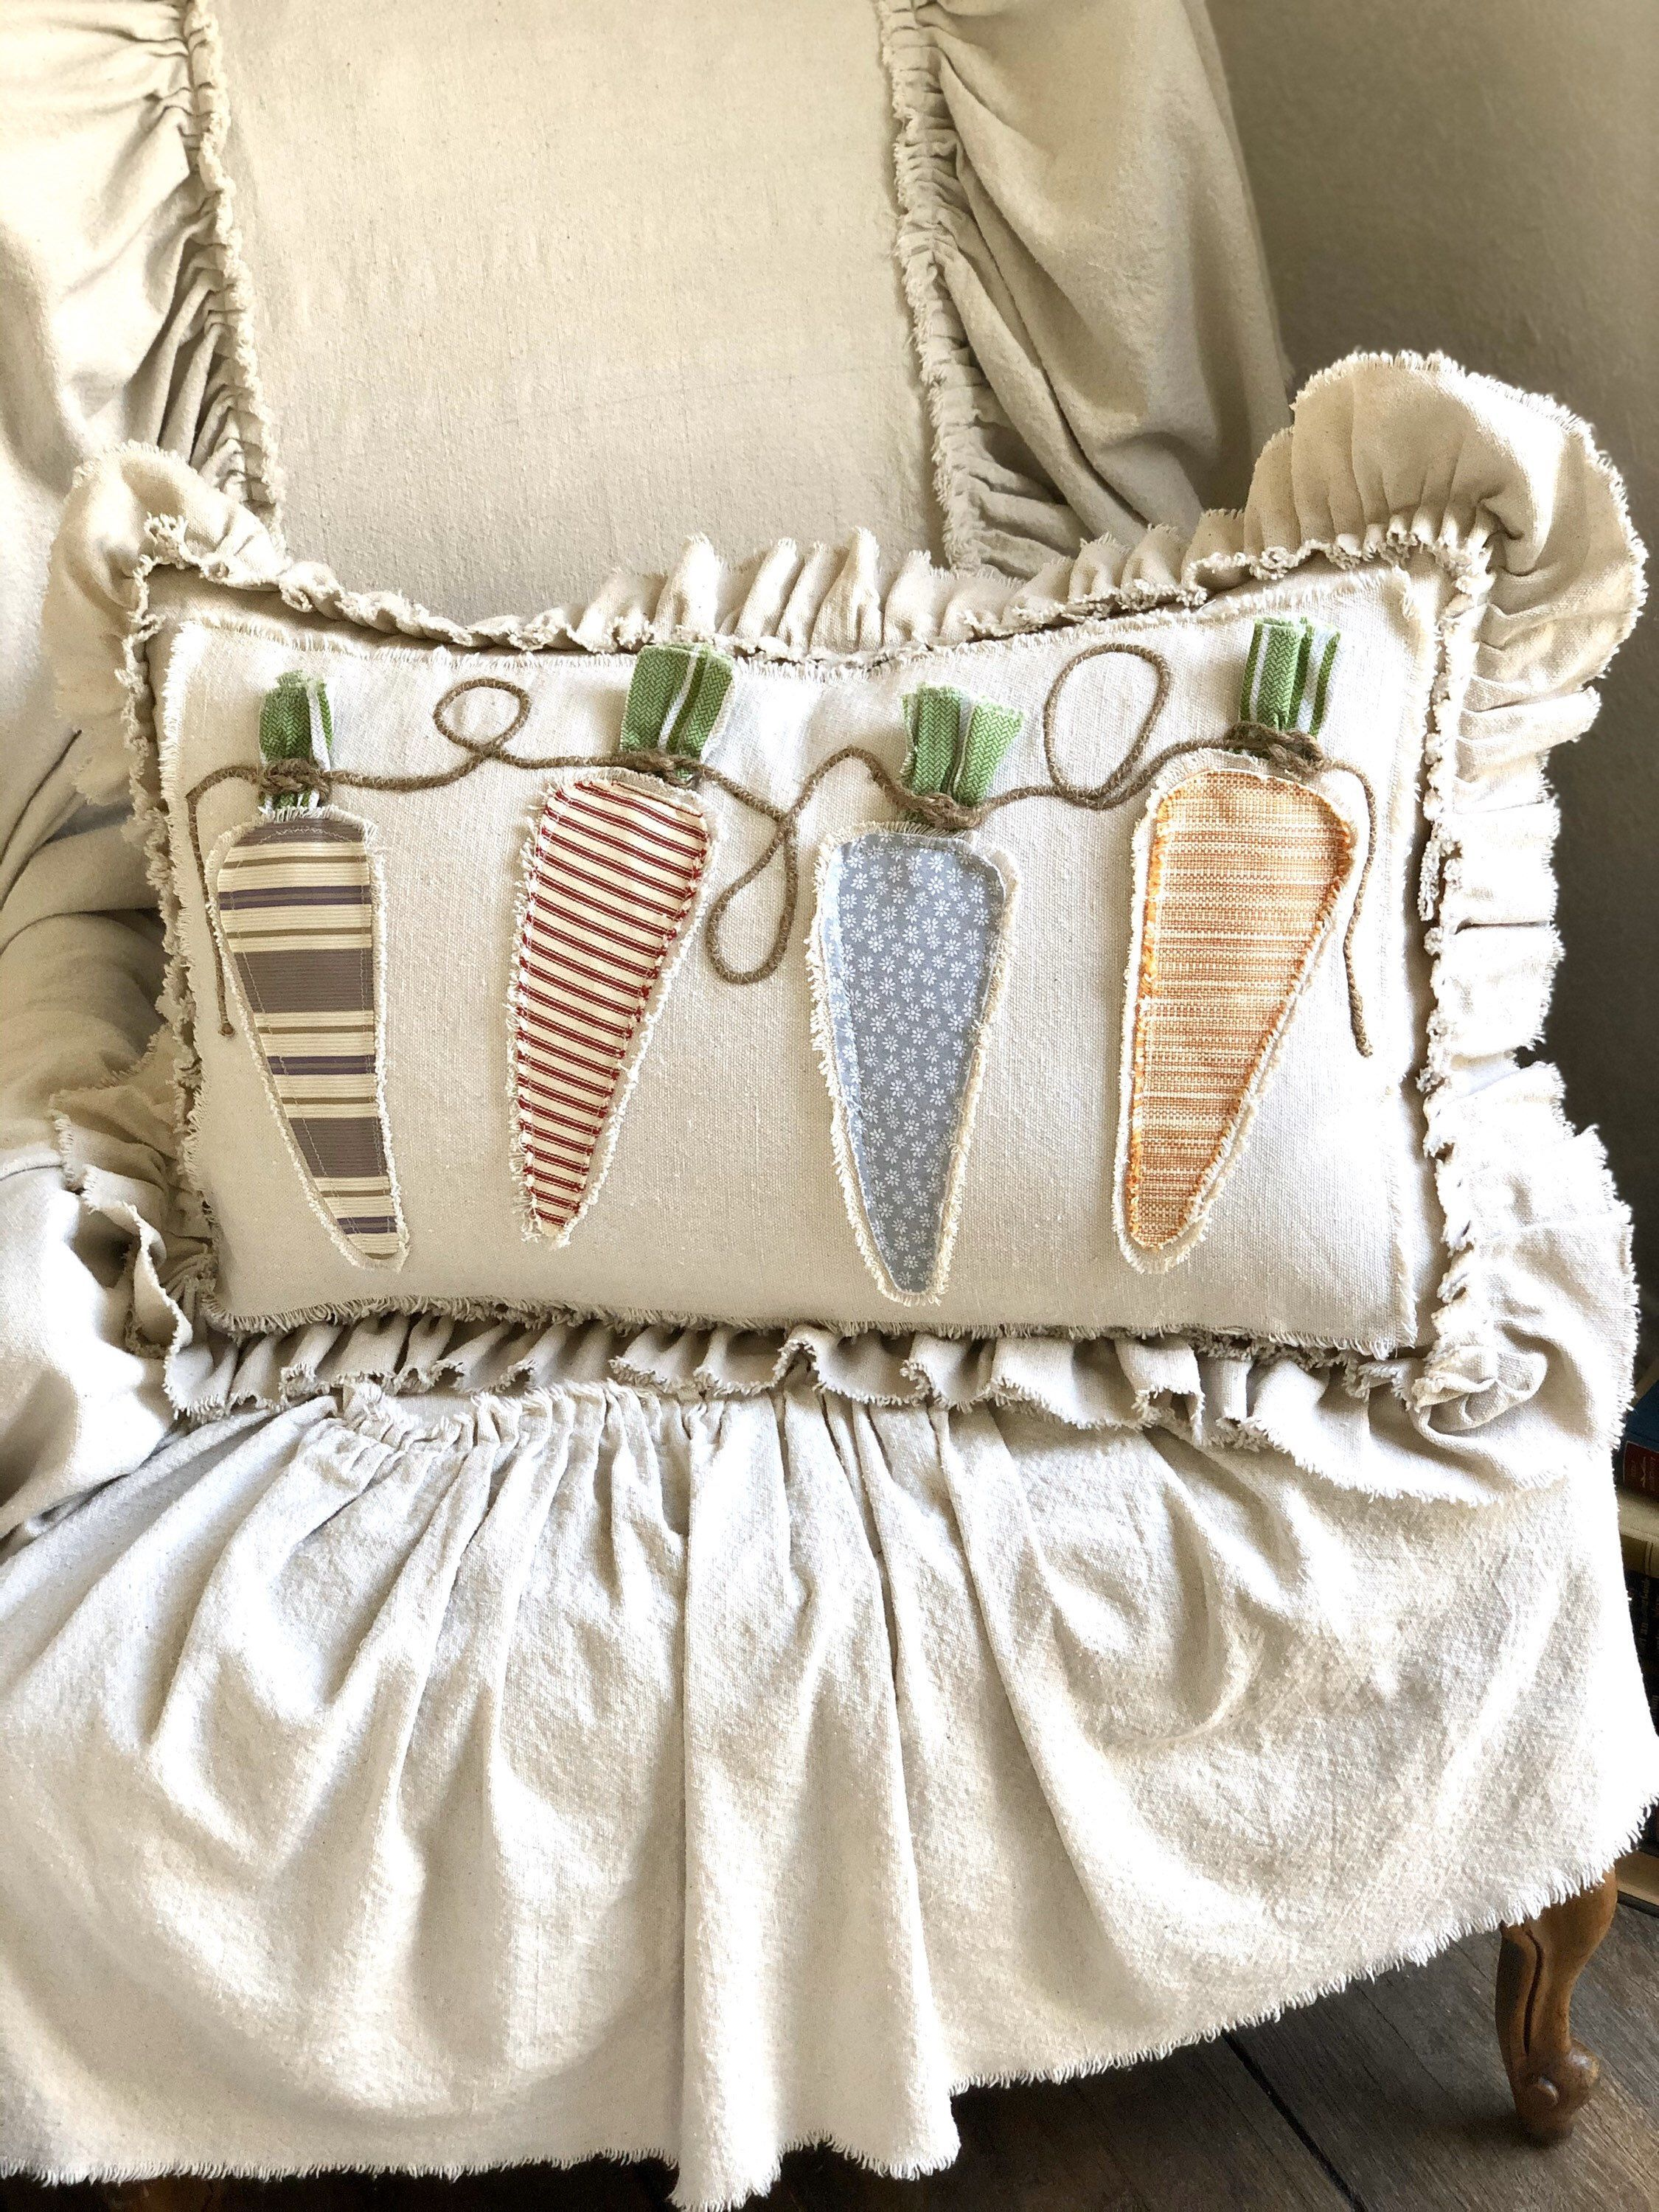 Pin On Easter In 2020 Easter Pillows Country Pillows Large Pillow Covers